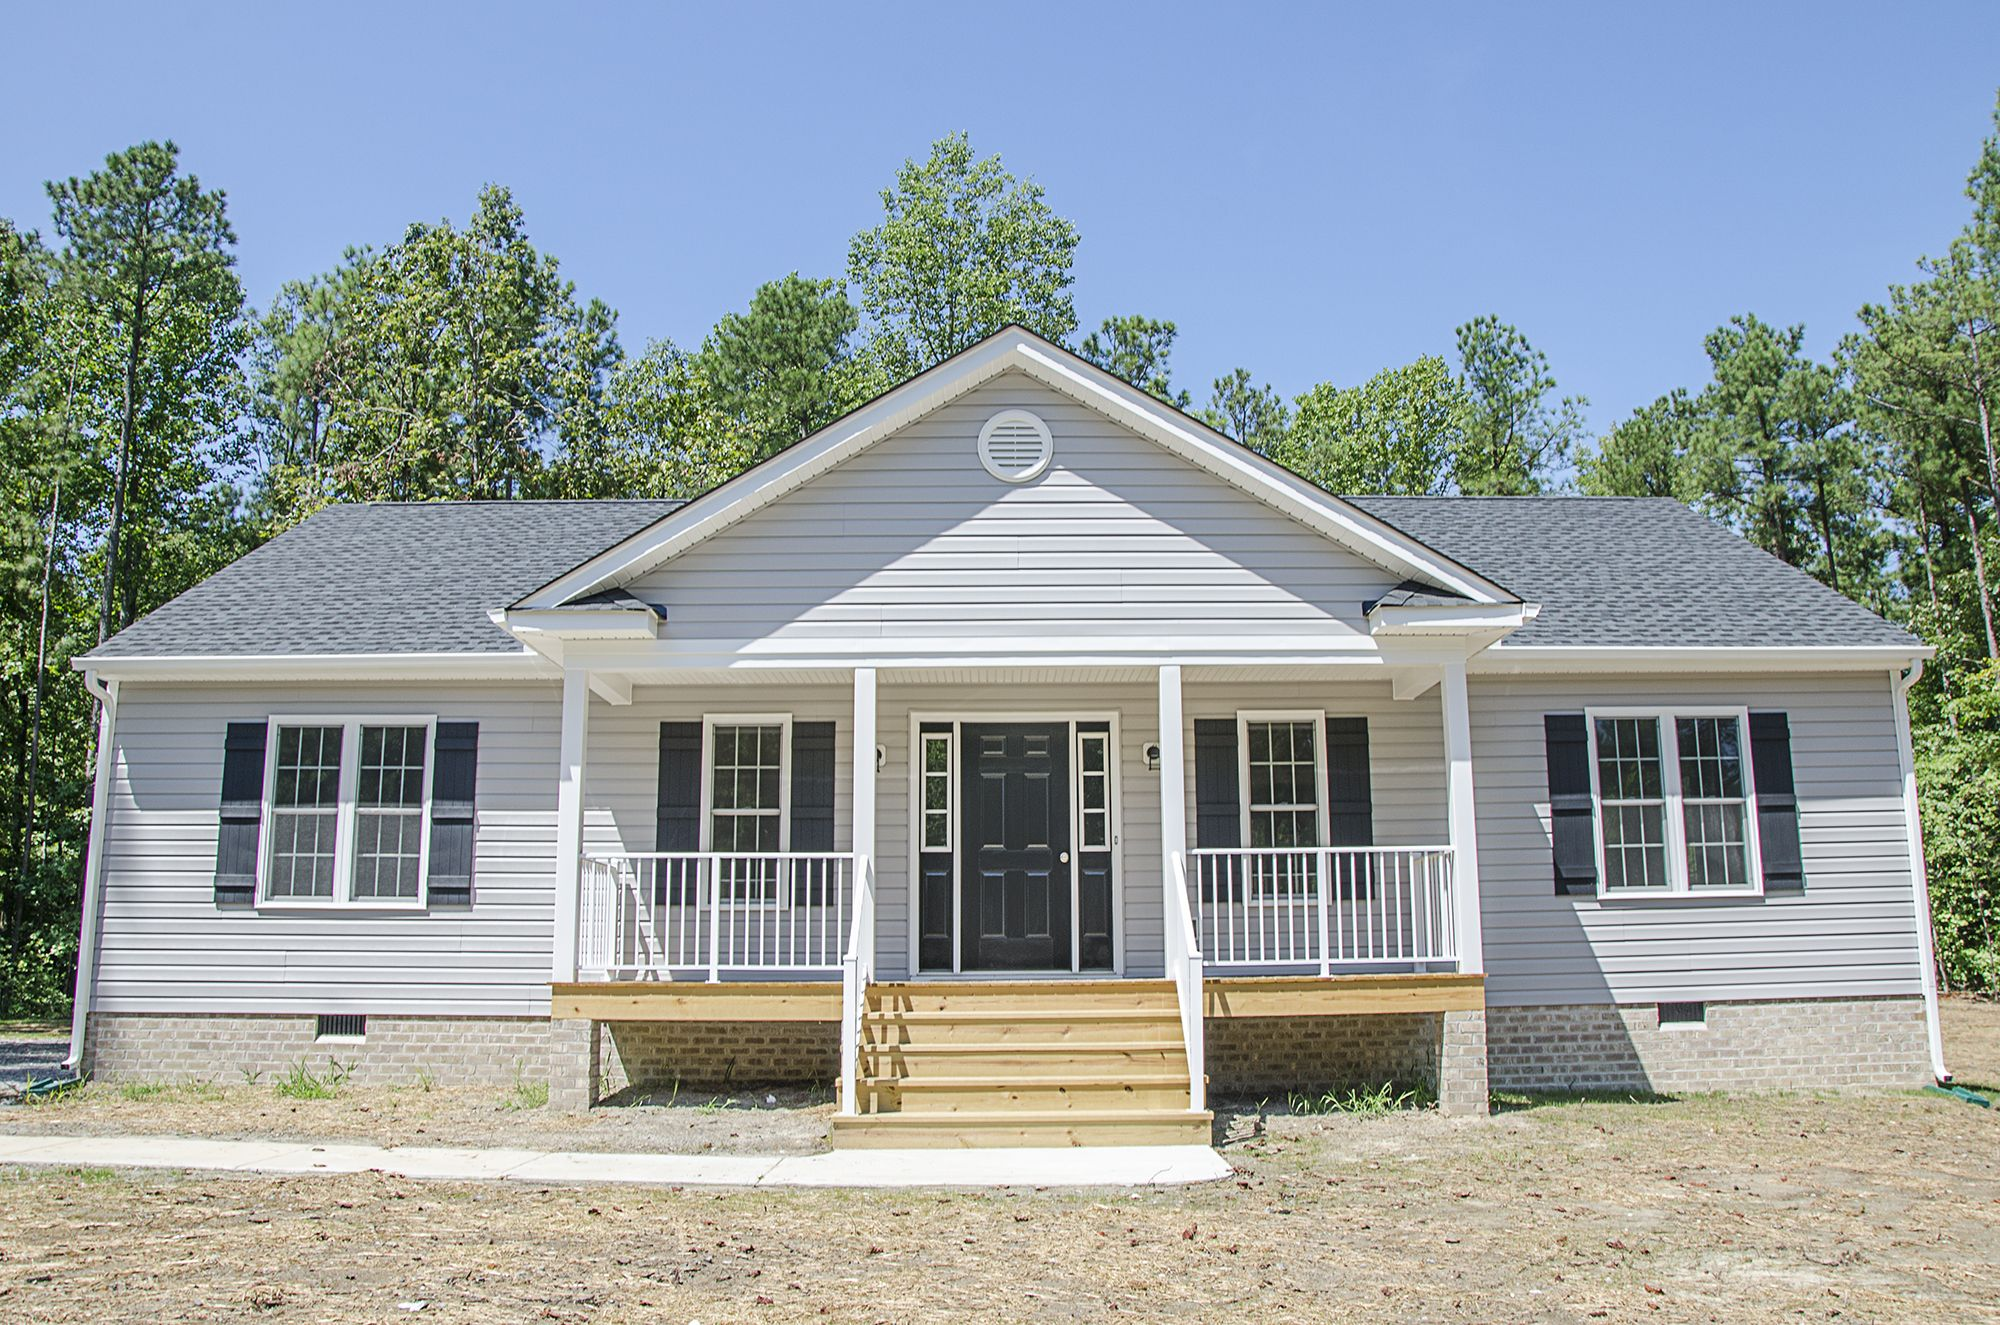 Beautiful Ranch Style Home With Gray Siding And A Front Porch